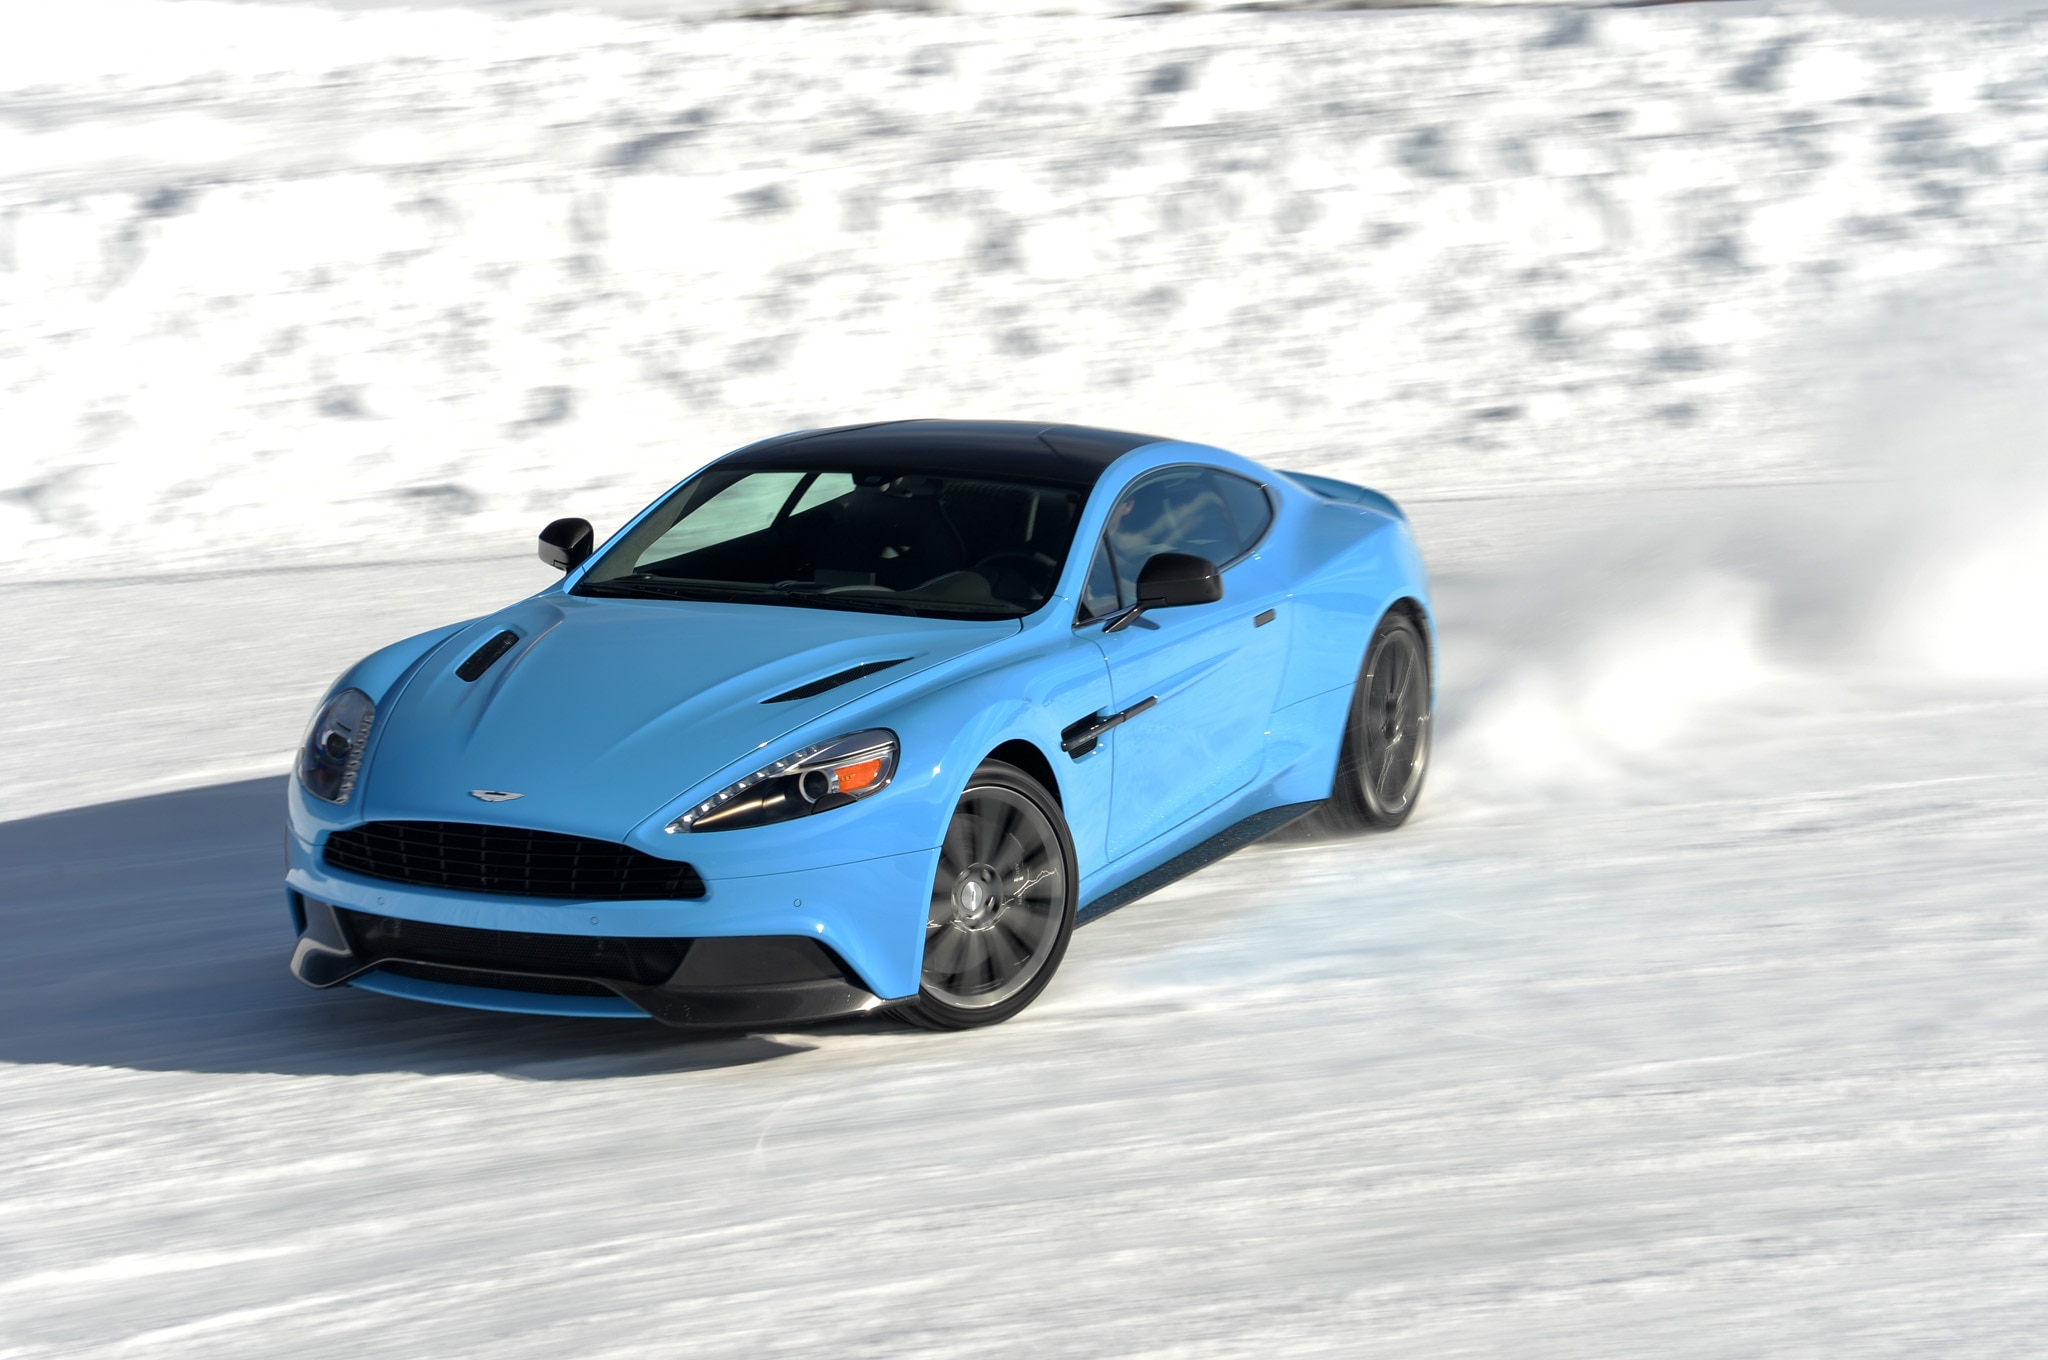 2014 Aston Martin Vanquish On Ice Front Slide1